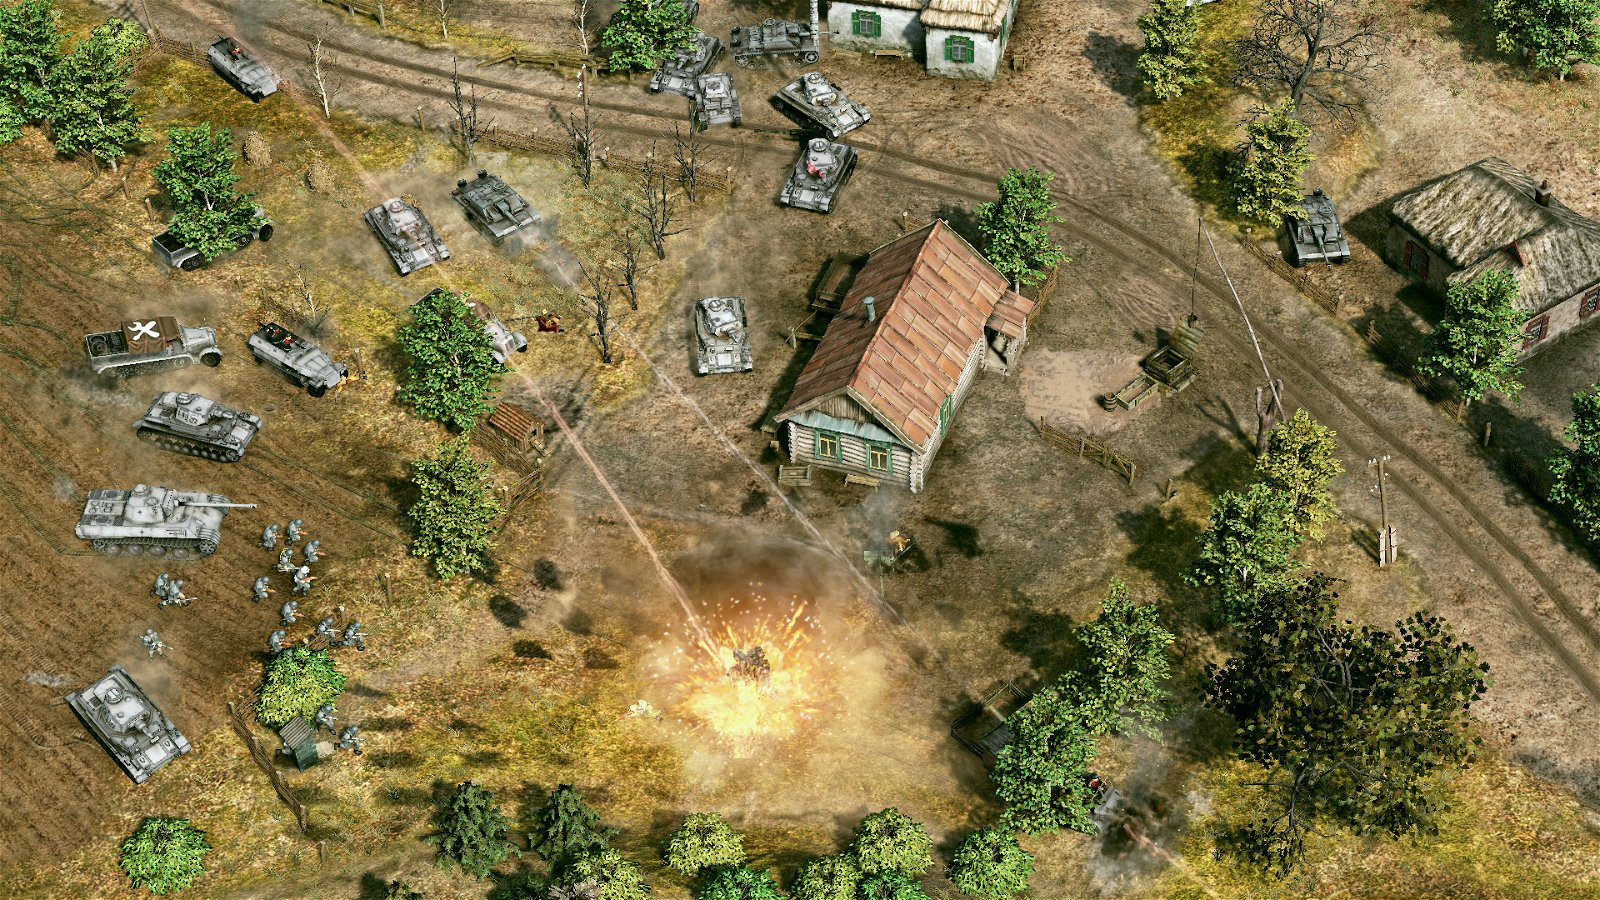 Reviving A Classic With Sudden Strike 4 5